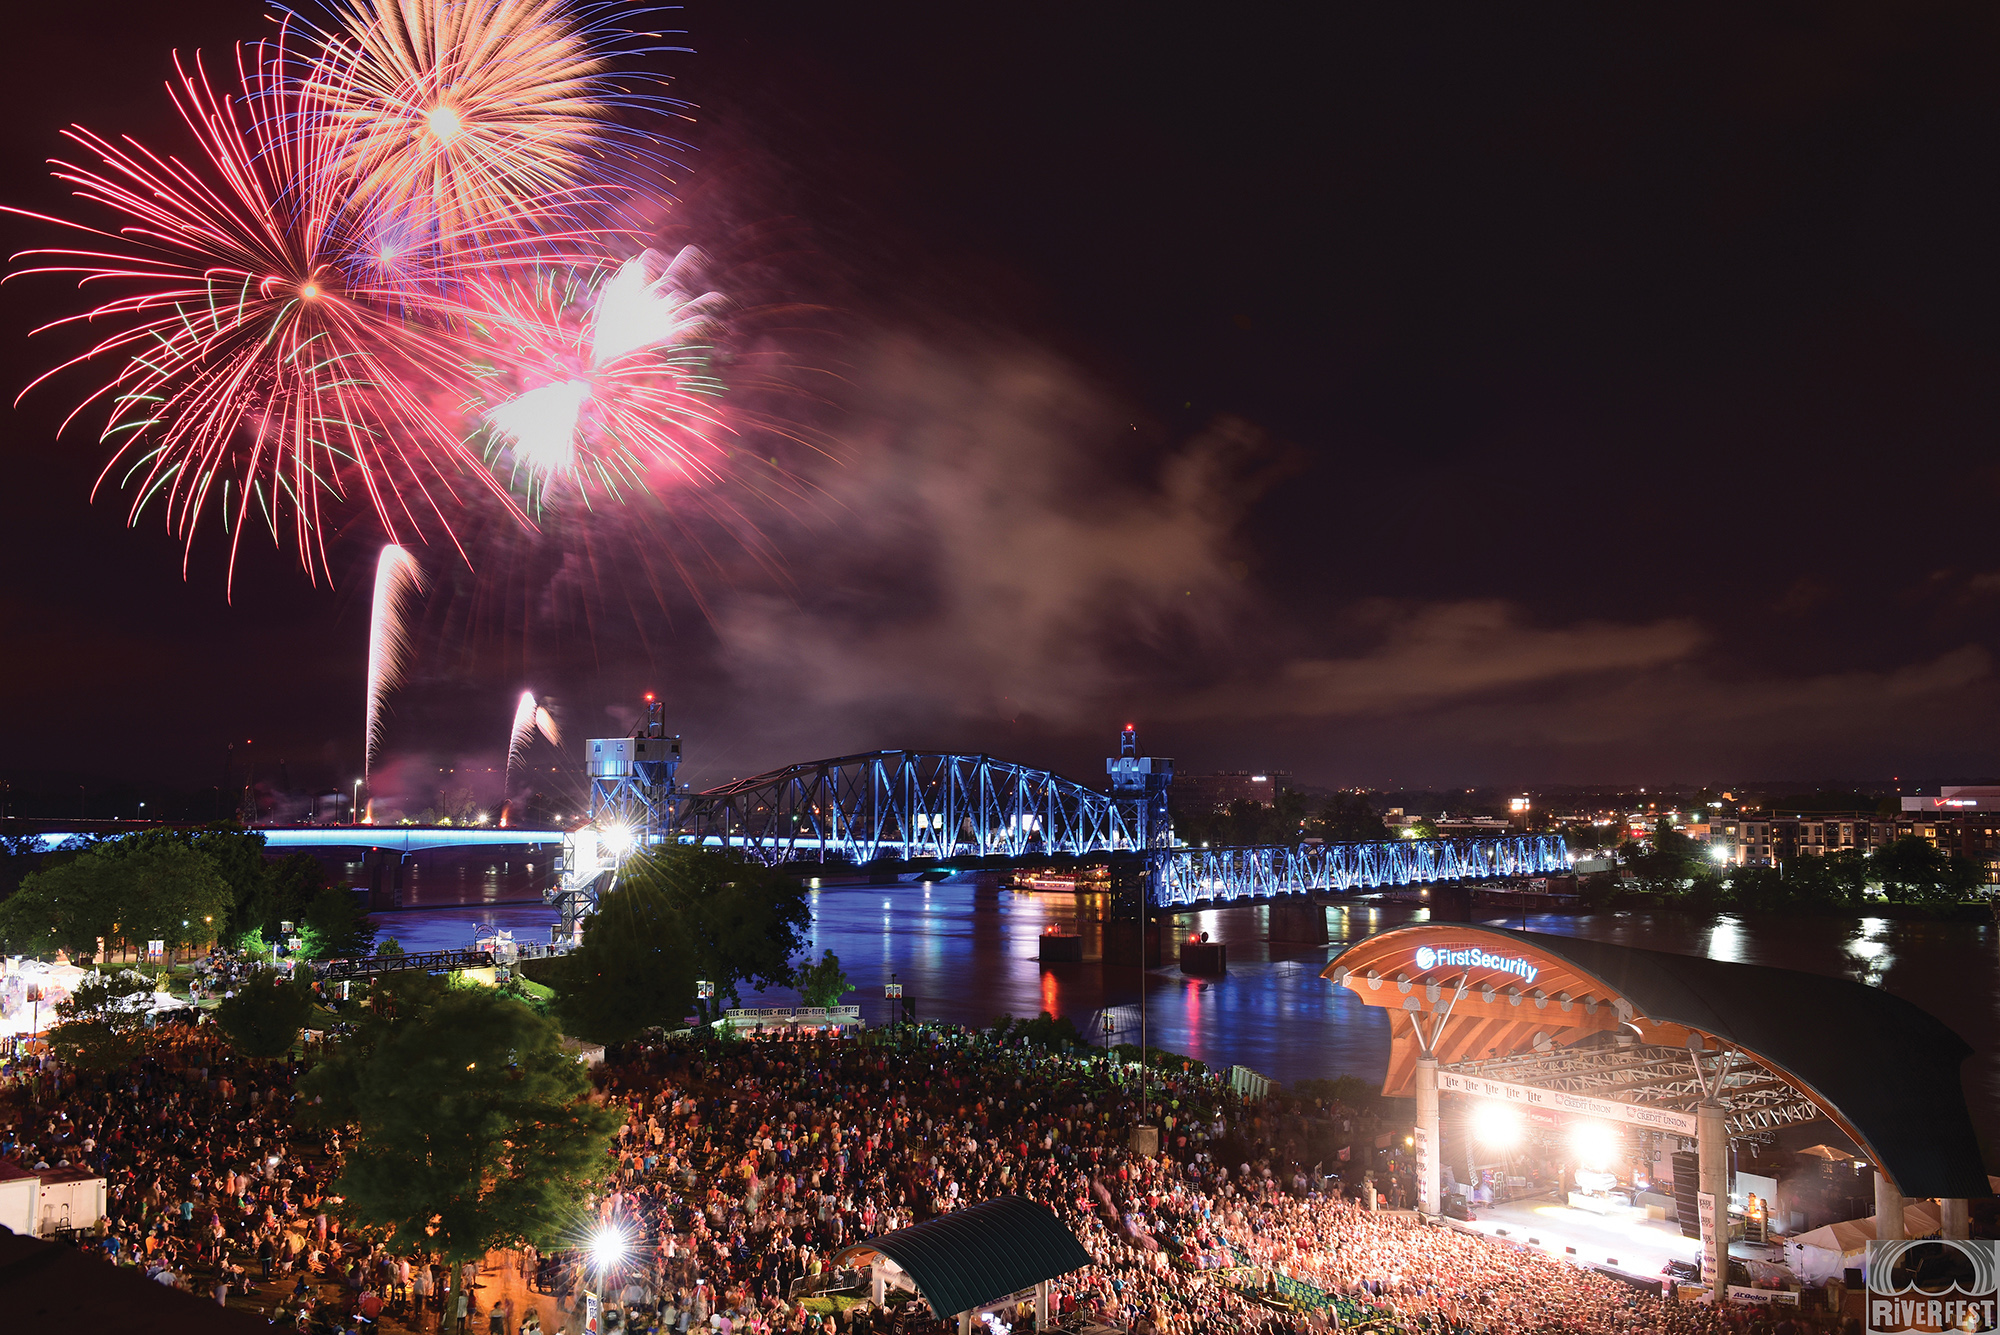 Riverfest's finale fireworks display